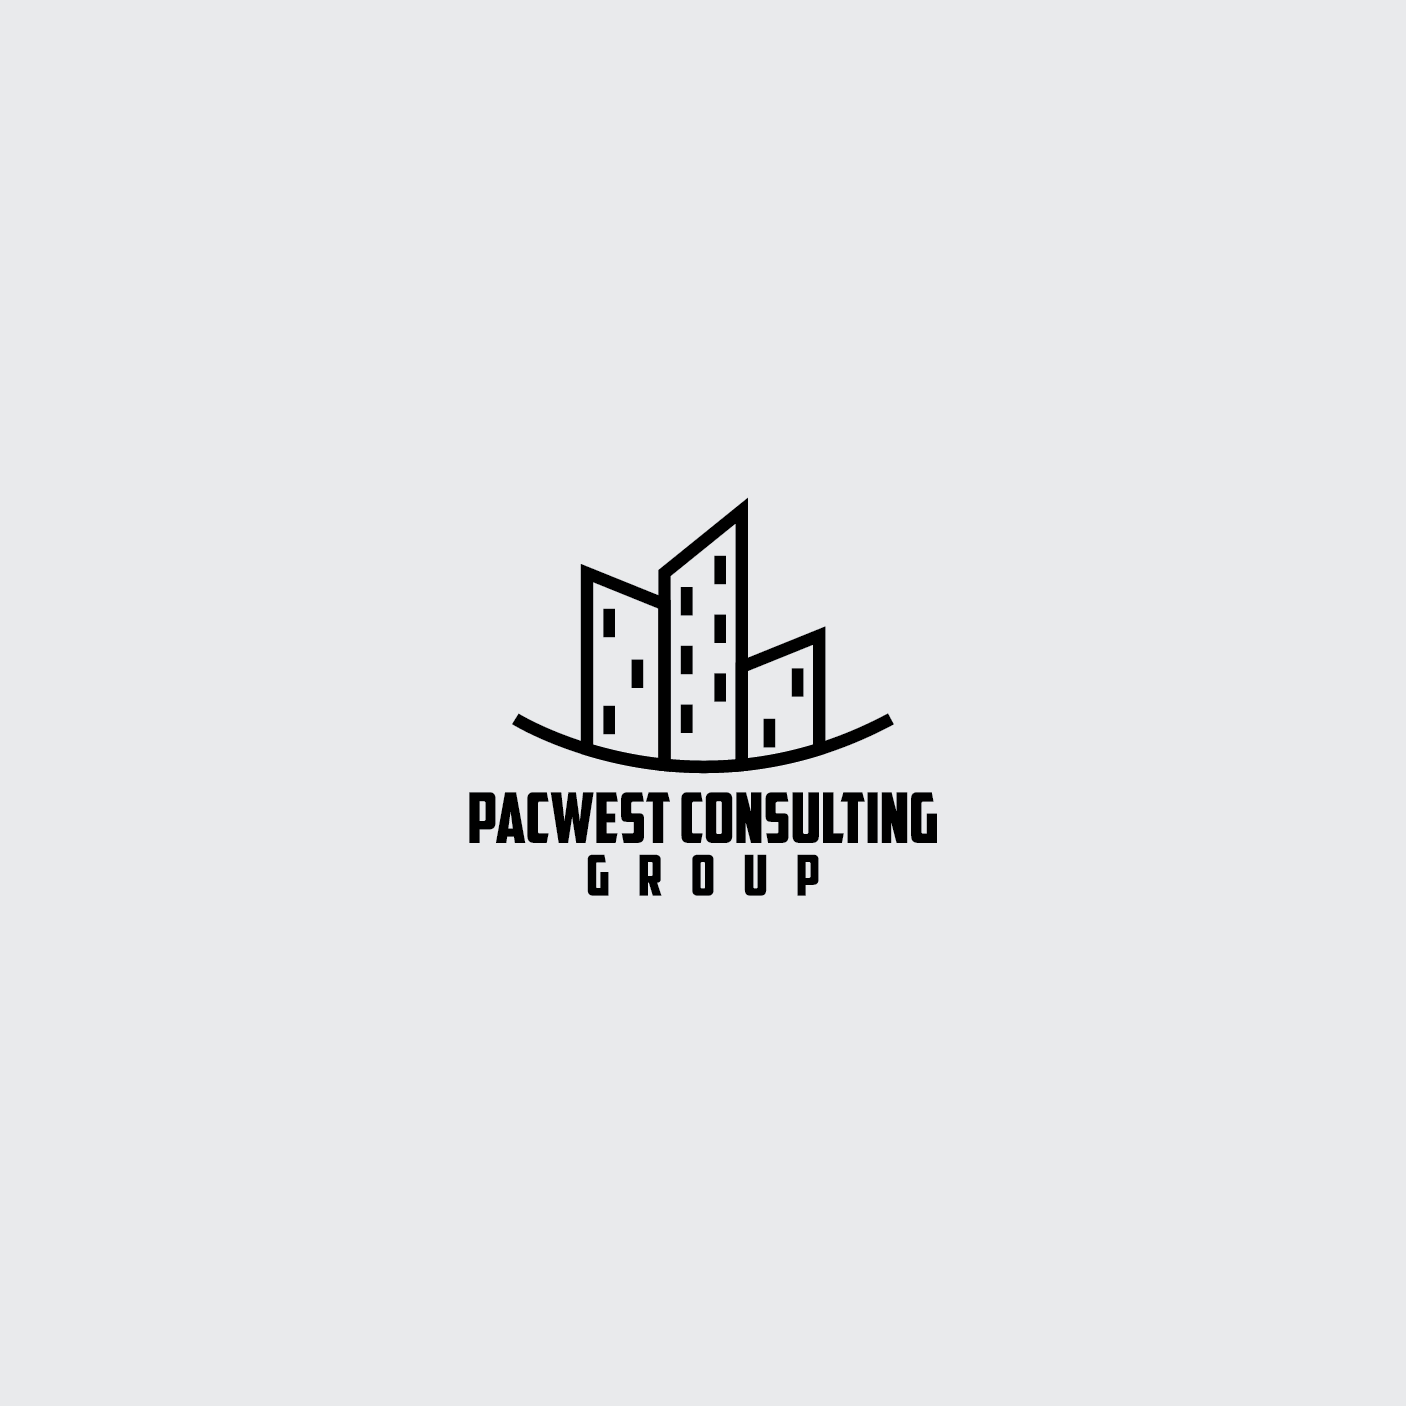 Logo Design by 354studio - Entry No. 32 in the Logo Design Contest Imaginative Logo Design for Pacwest Consulting Group.